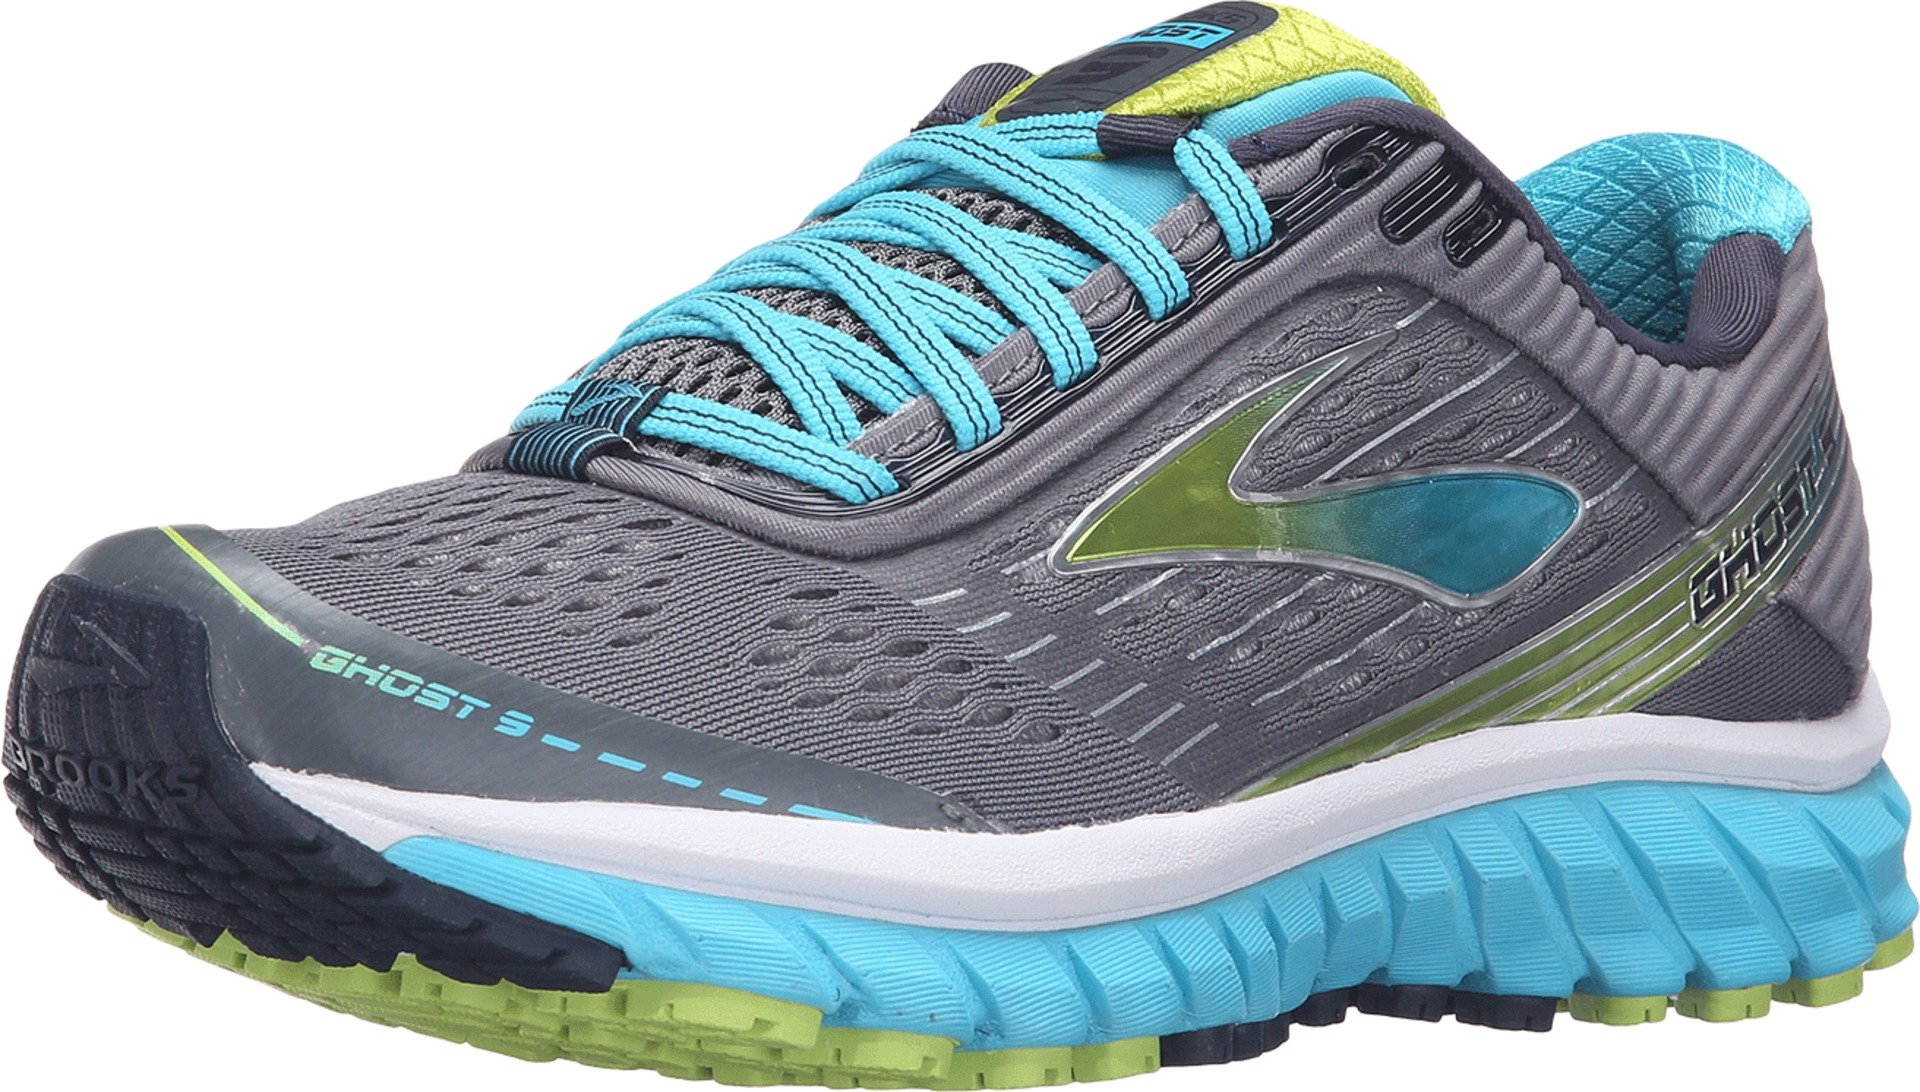 Brooks Women's Ghost 9 Silver/Blue Atoll/Lime Punch Running shoes - 9 B(M) US